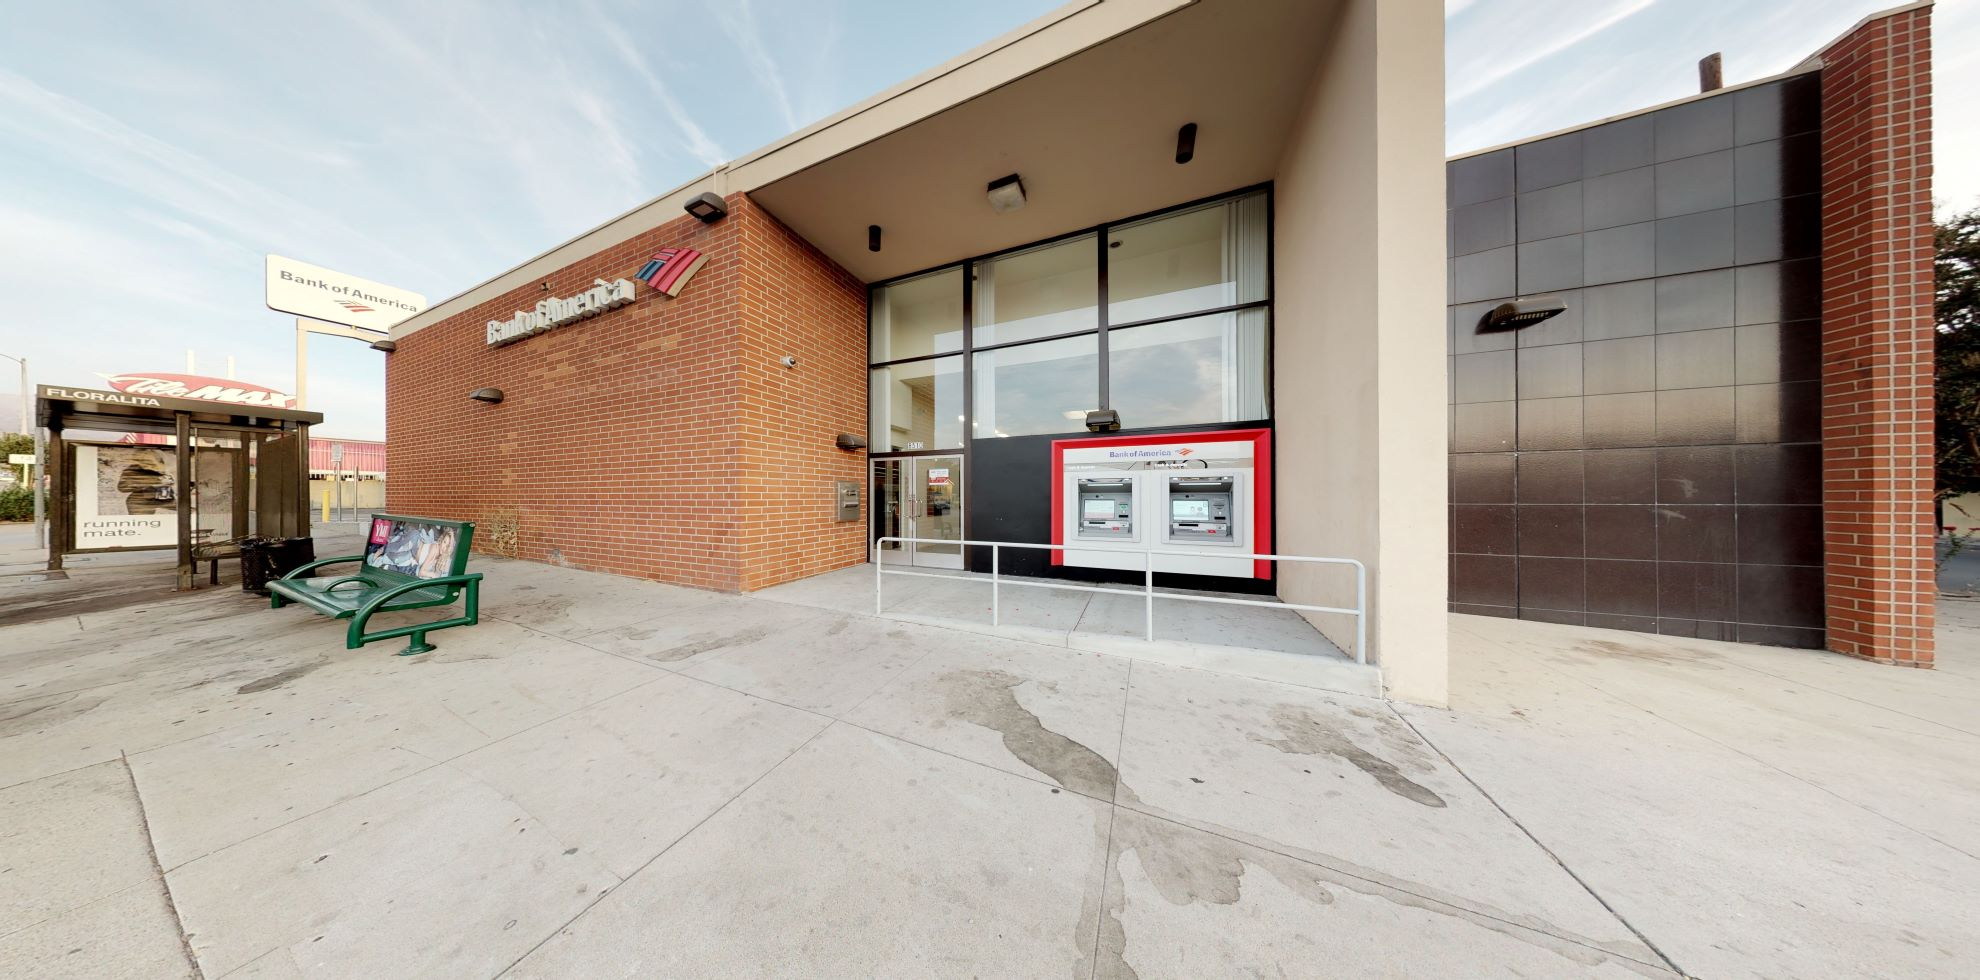 Bank of America financial center with walk-up ATM   8510 Foothill Blvd, Sunland, CA 91040